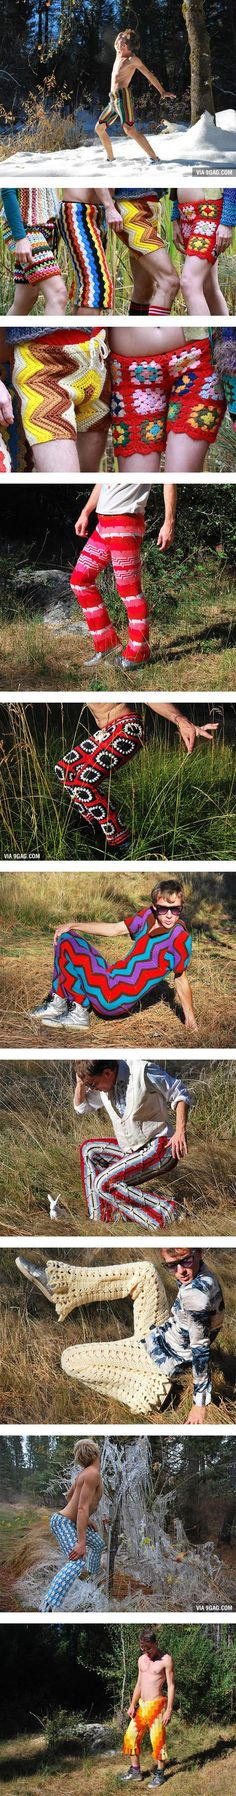 New Fashion For Men: Crochet Shorts Made From Recycled Vintage Blankets.Toll, love the idea!